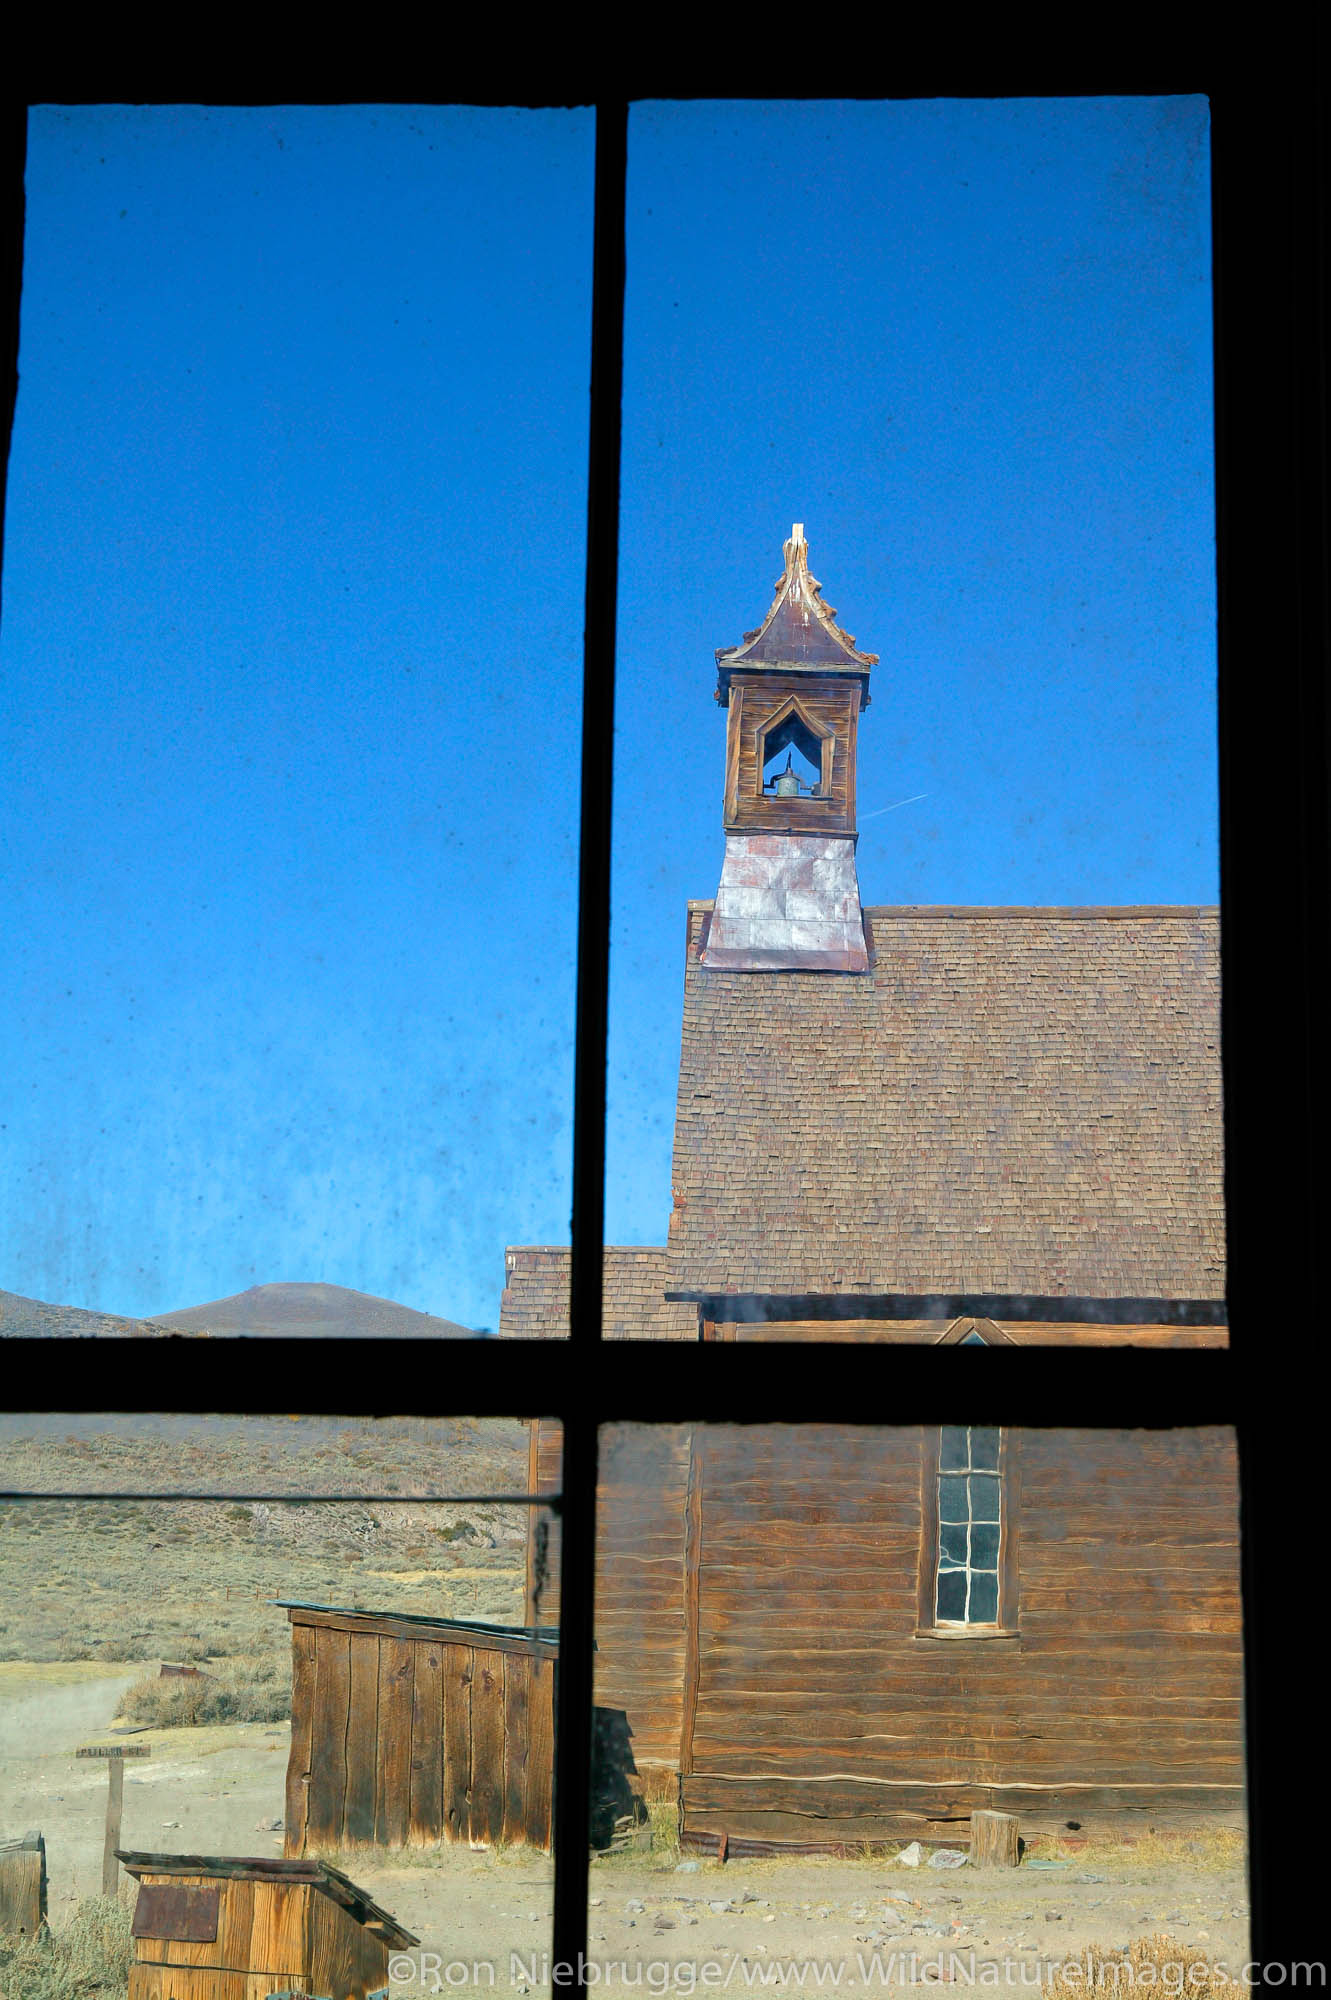 The old Methodist Church as viewed through the window of the Miller House, in the historic ghost town of Bodie.  Bodie was once...